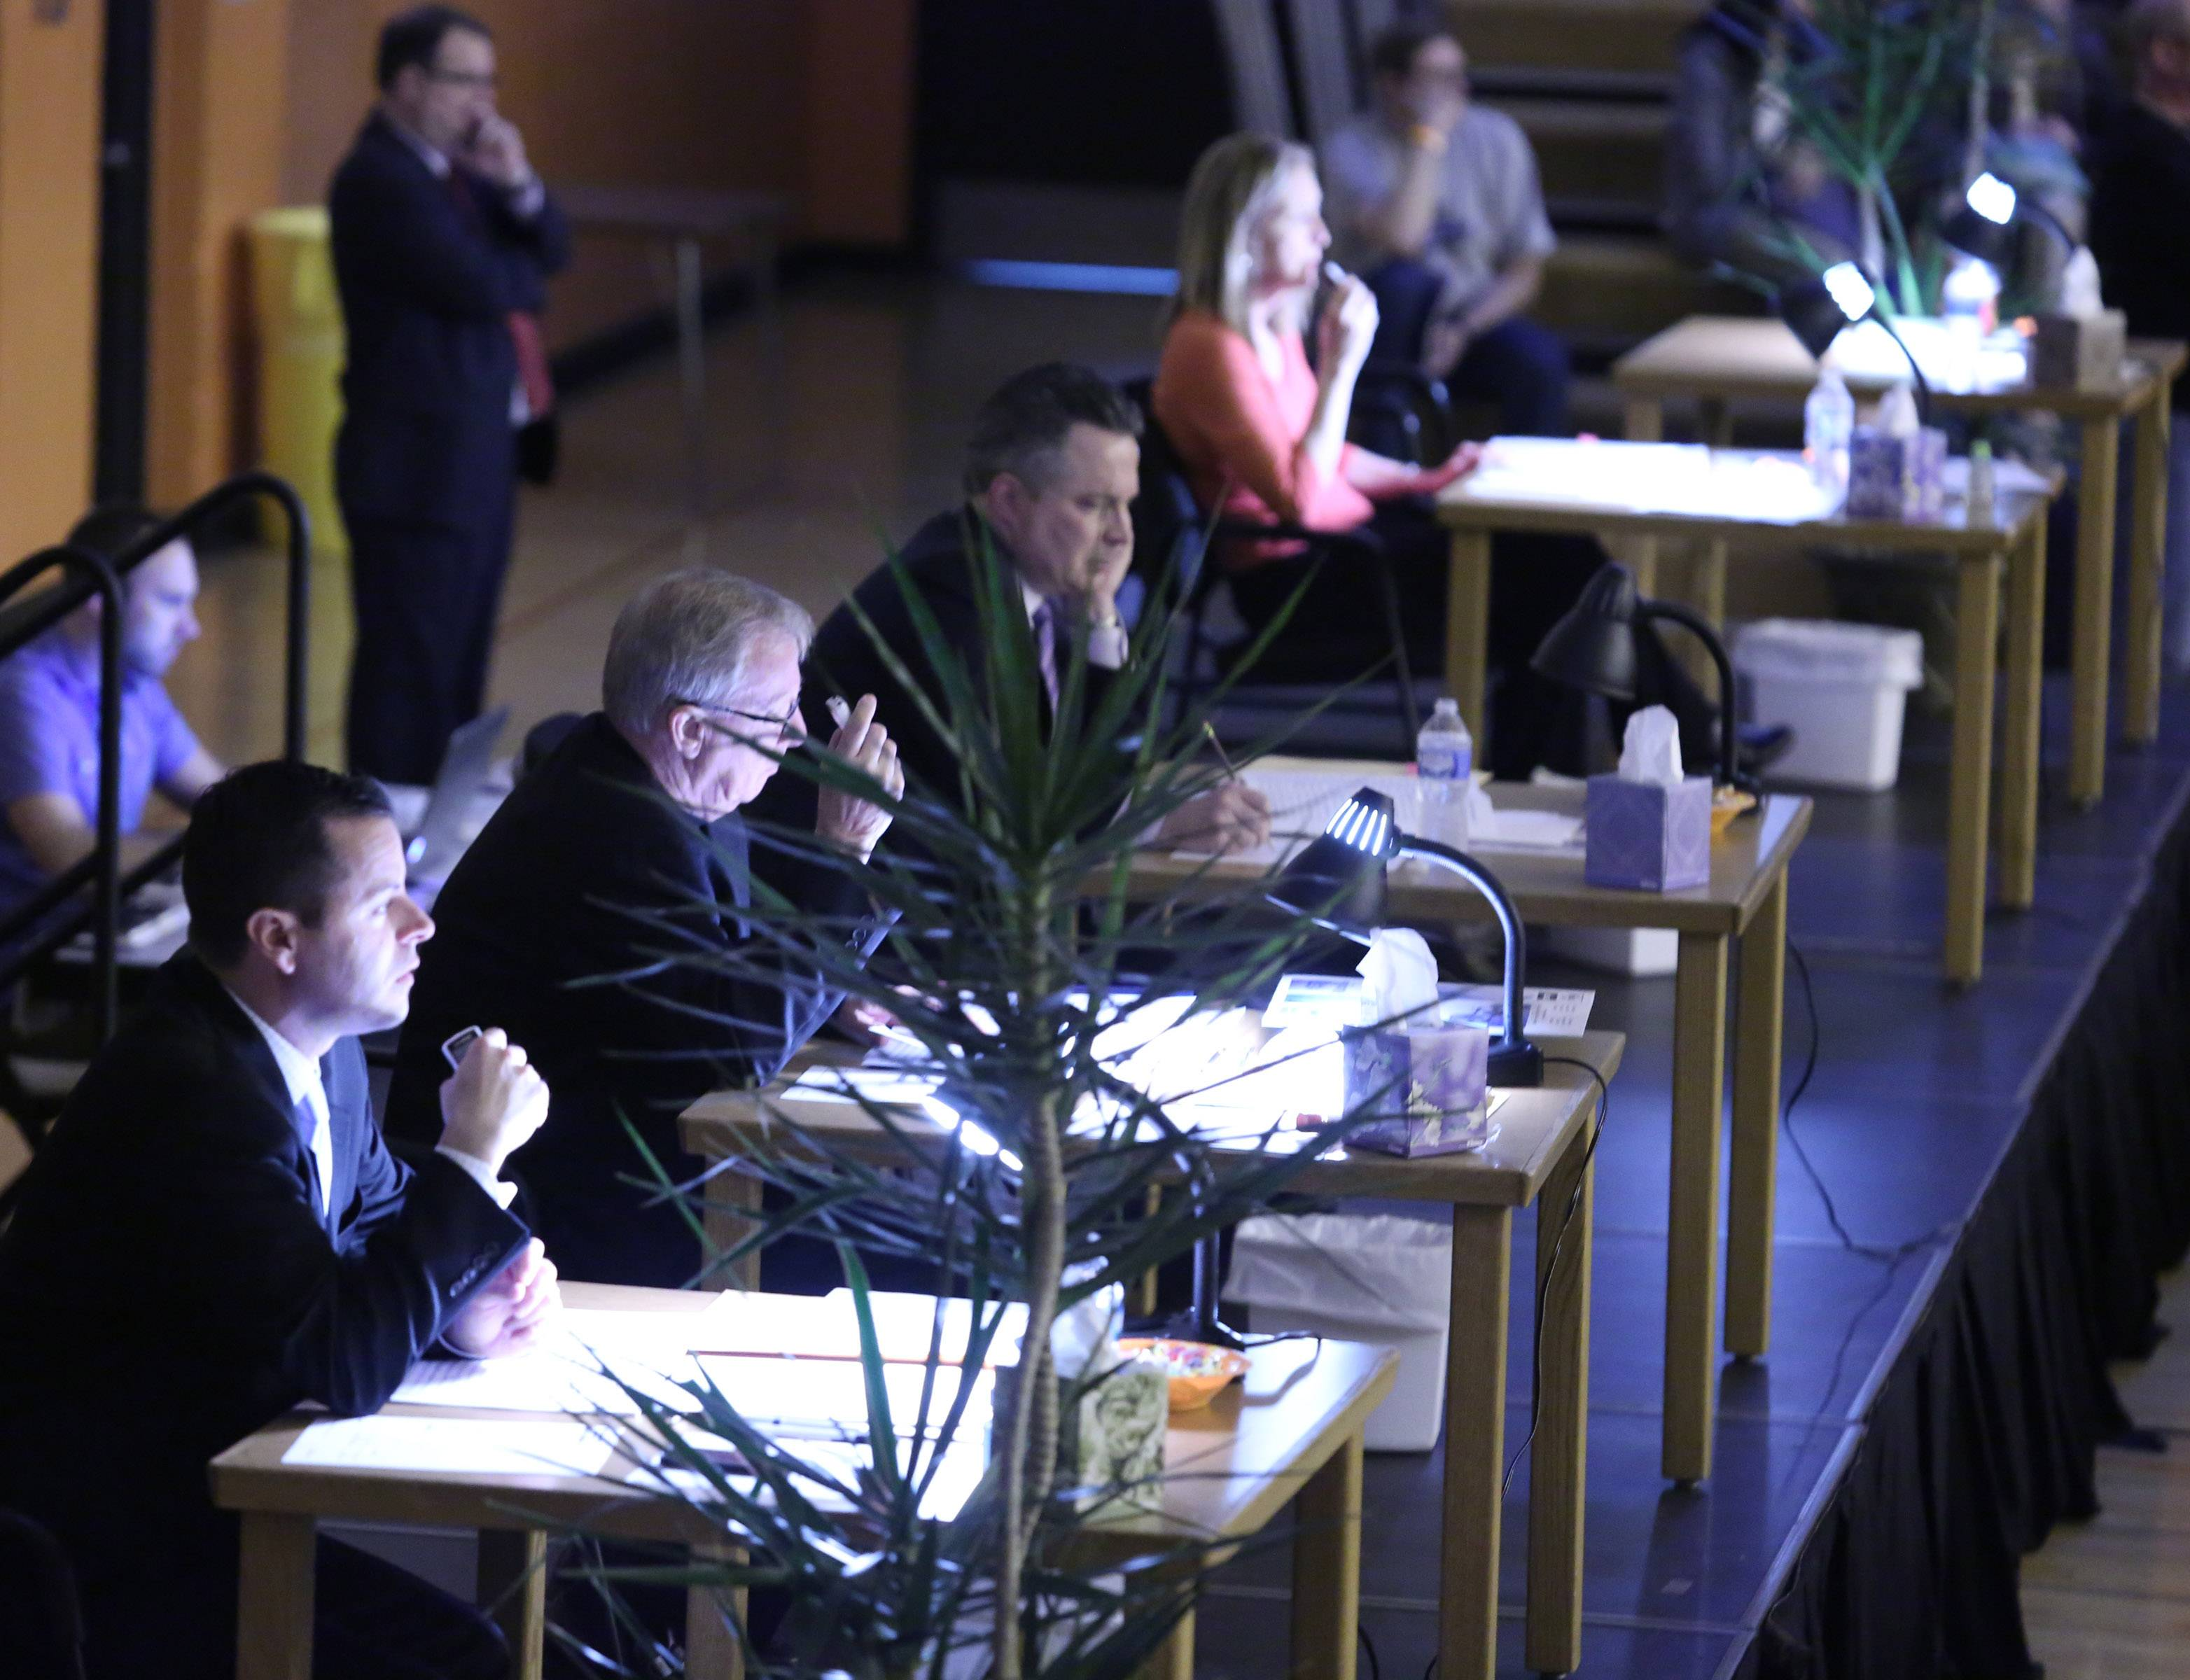 Judges take notes and use microphones to record scores Saturday during the 14th Annual Chicagoland Invitational.